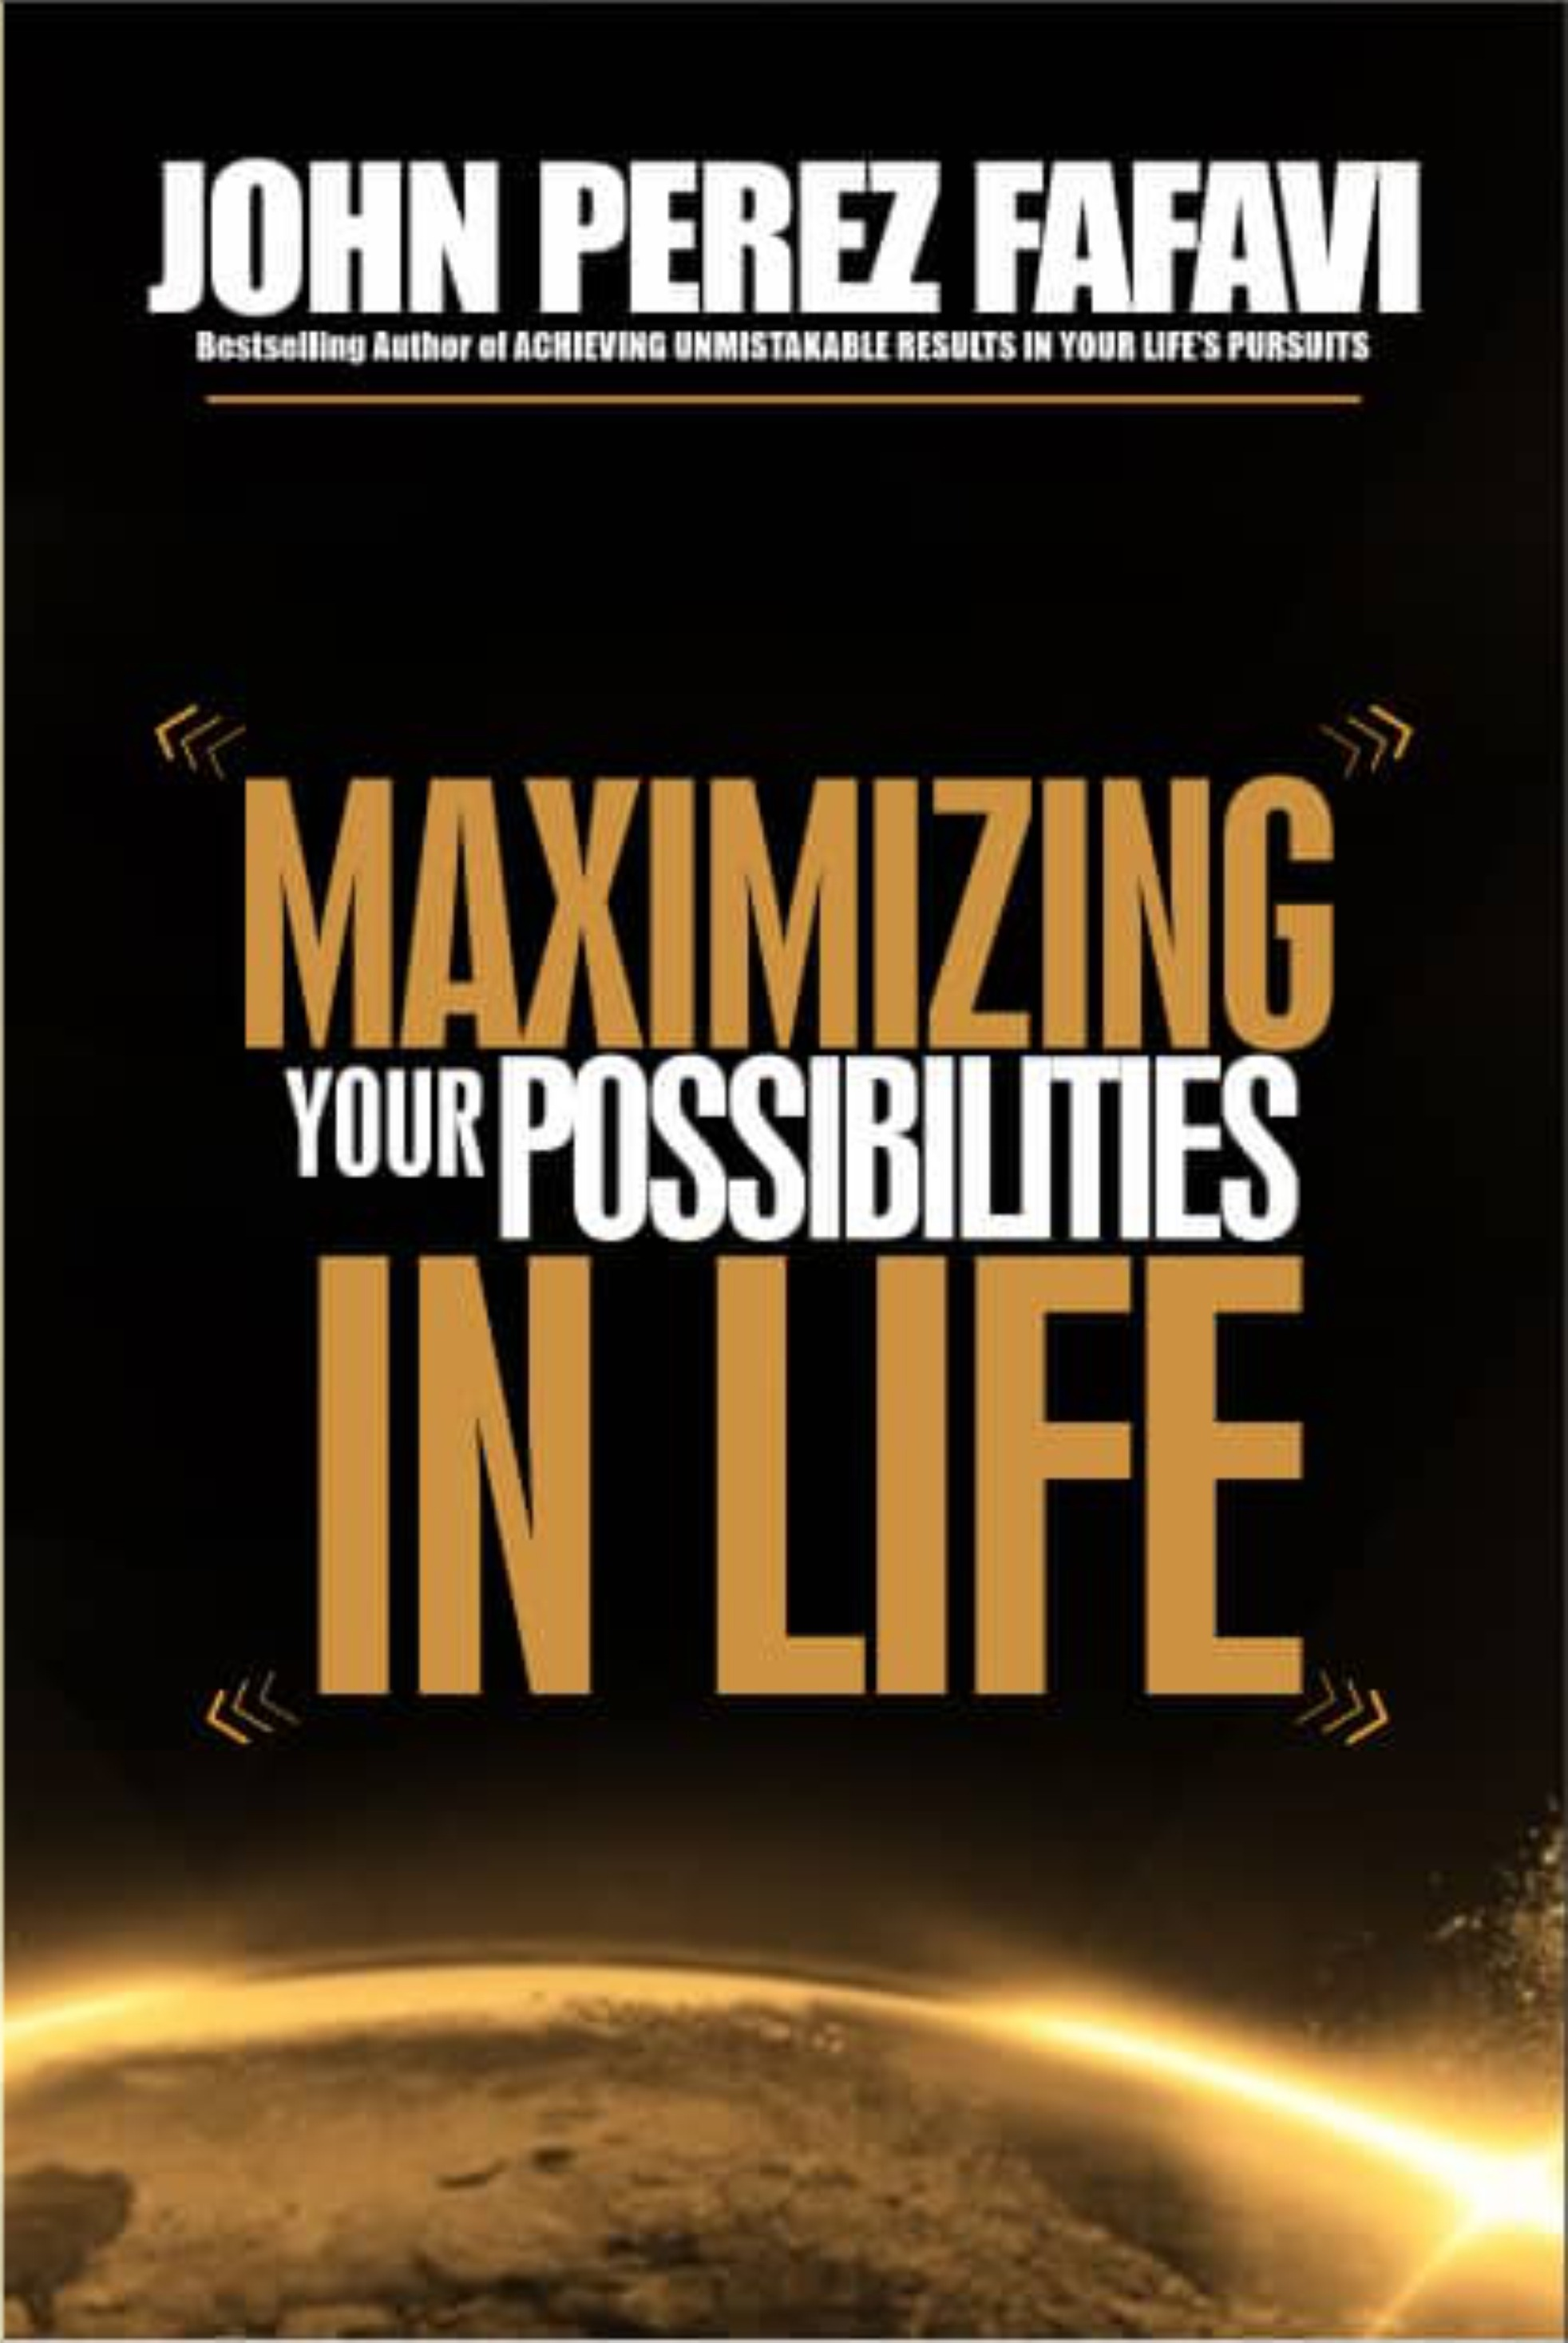 MAXIMIZING YOUR POSSIBILITIES IN LIFE